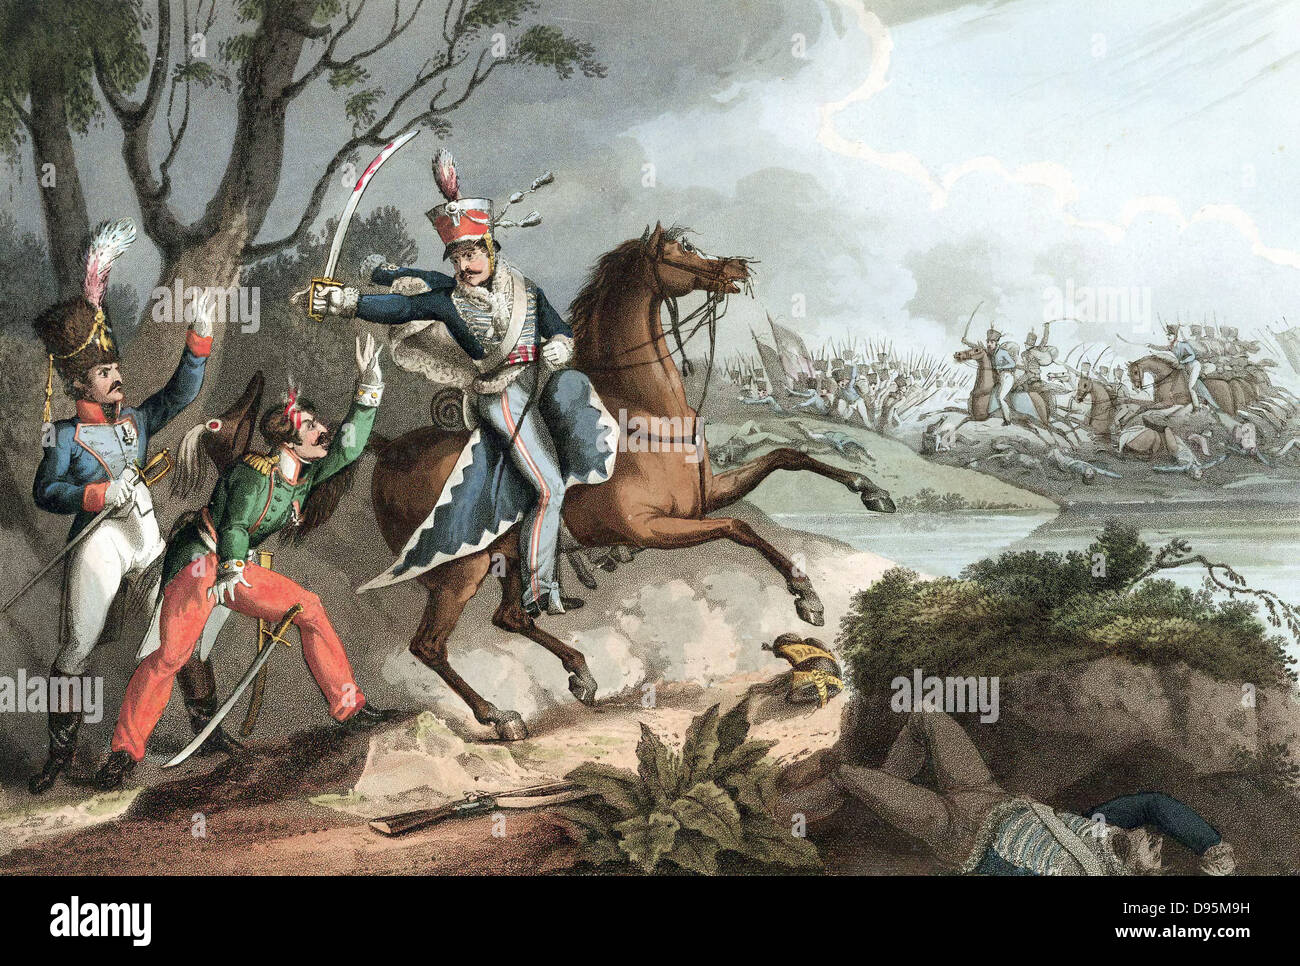 Napoleonic Wars: Battle of Albuera 16 May 1811,  Beresford defeats Soult. Sergeant of 18th Hussars (British) takes - Stock Image